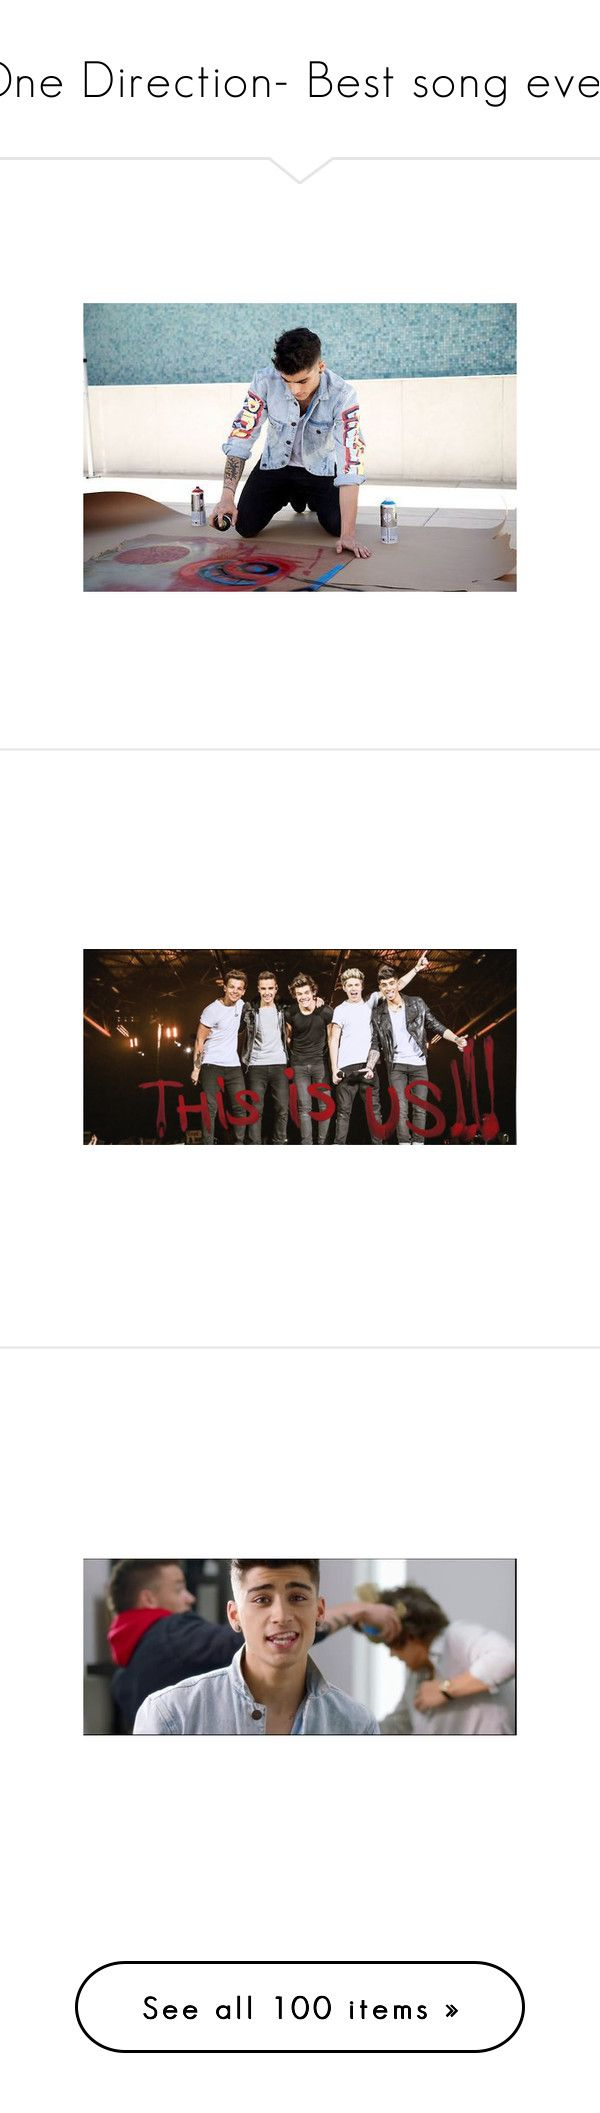 """""""One Direction- Best song ever."""" by ma-sandbote ❤ liked on Polyvore featuring one direction, zayn malik, 1d, best song ever, zayn, images, marcel, harry, harry styles and bse"""